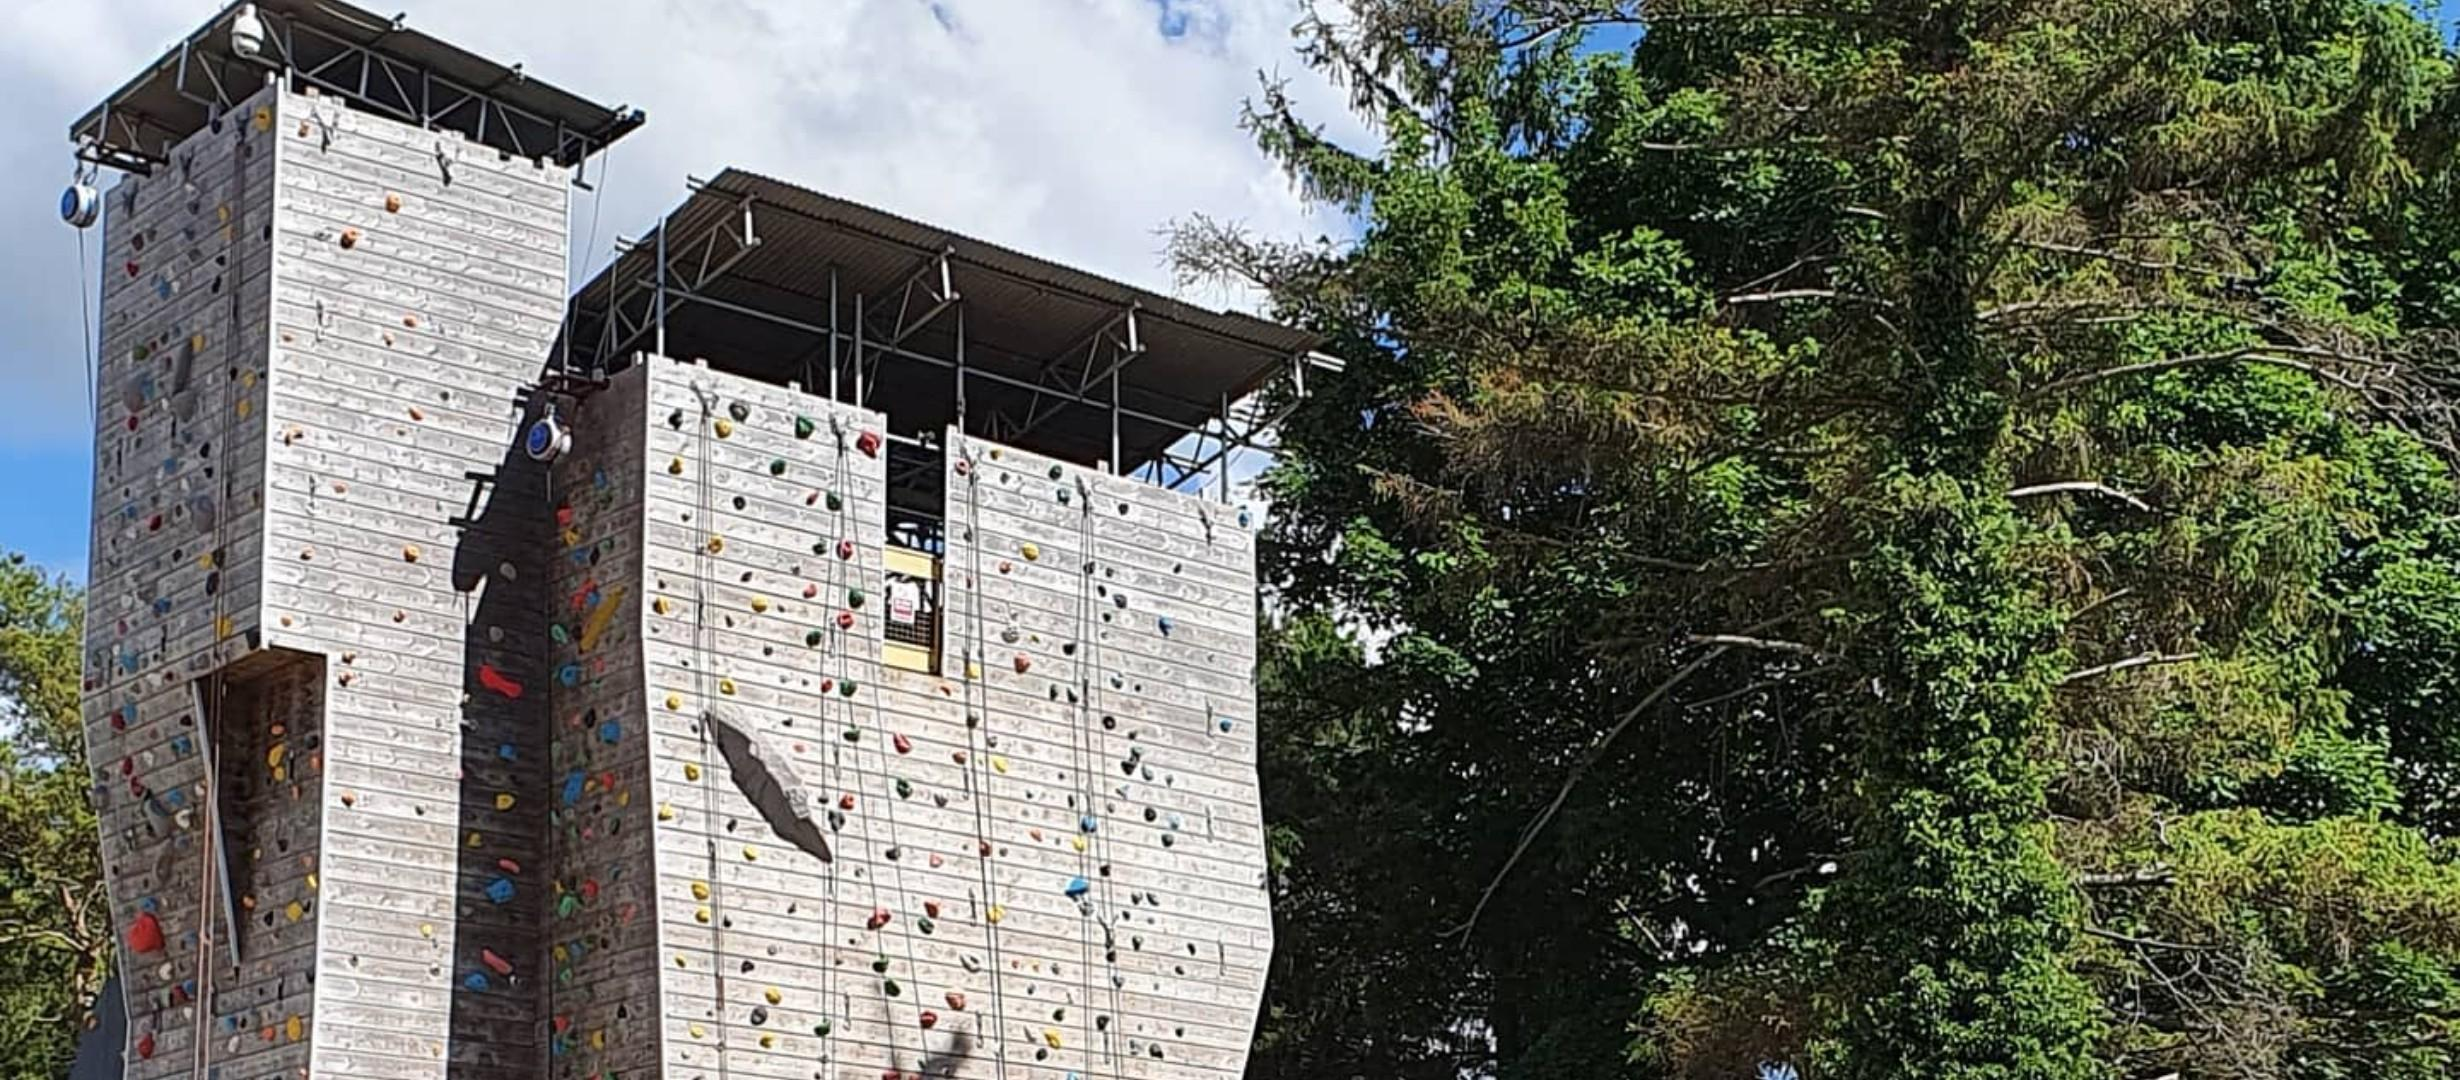 two climbing walls outside by trees